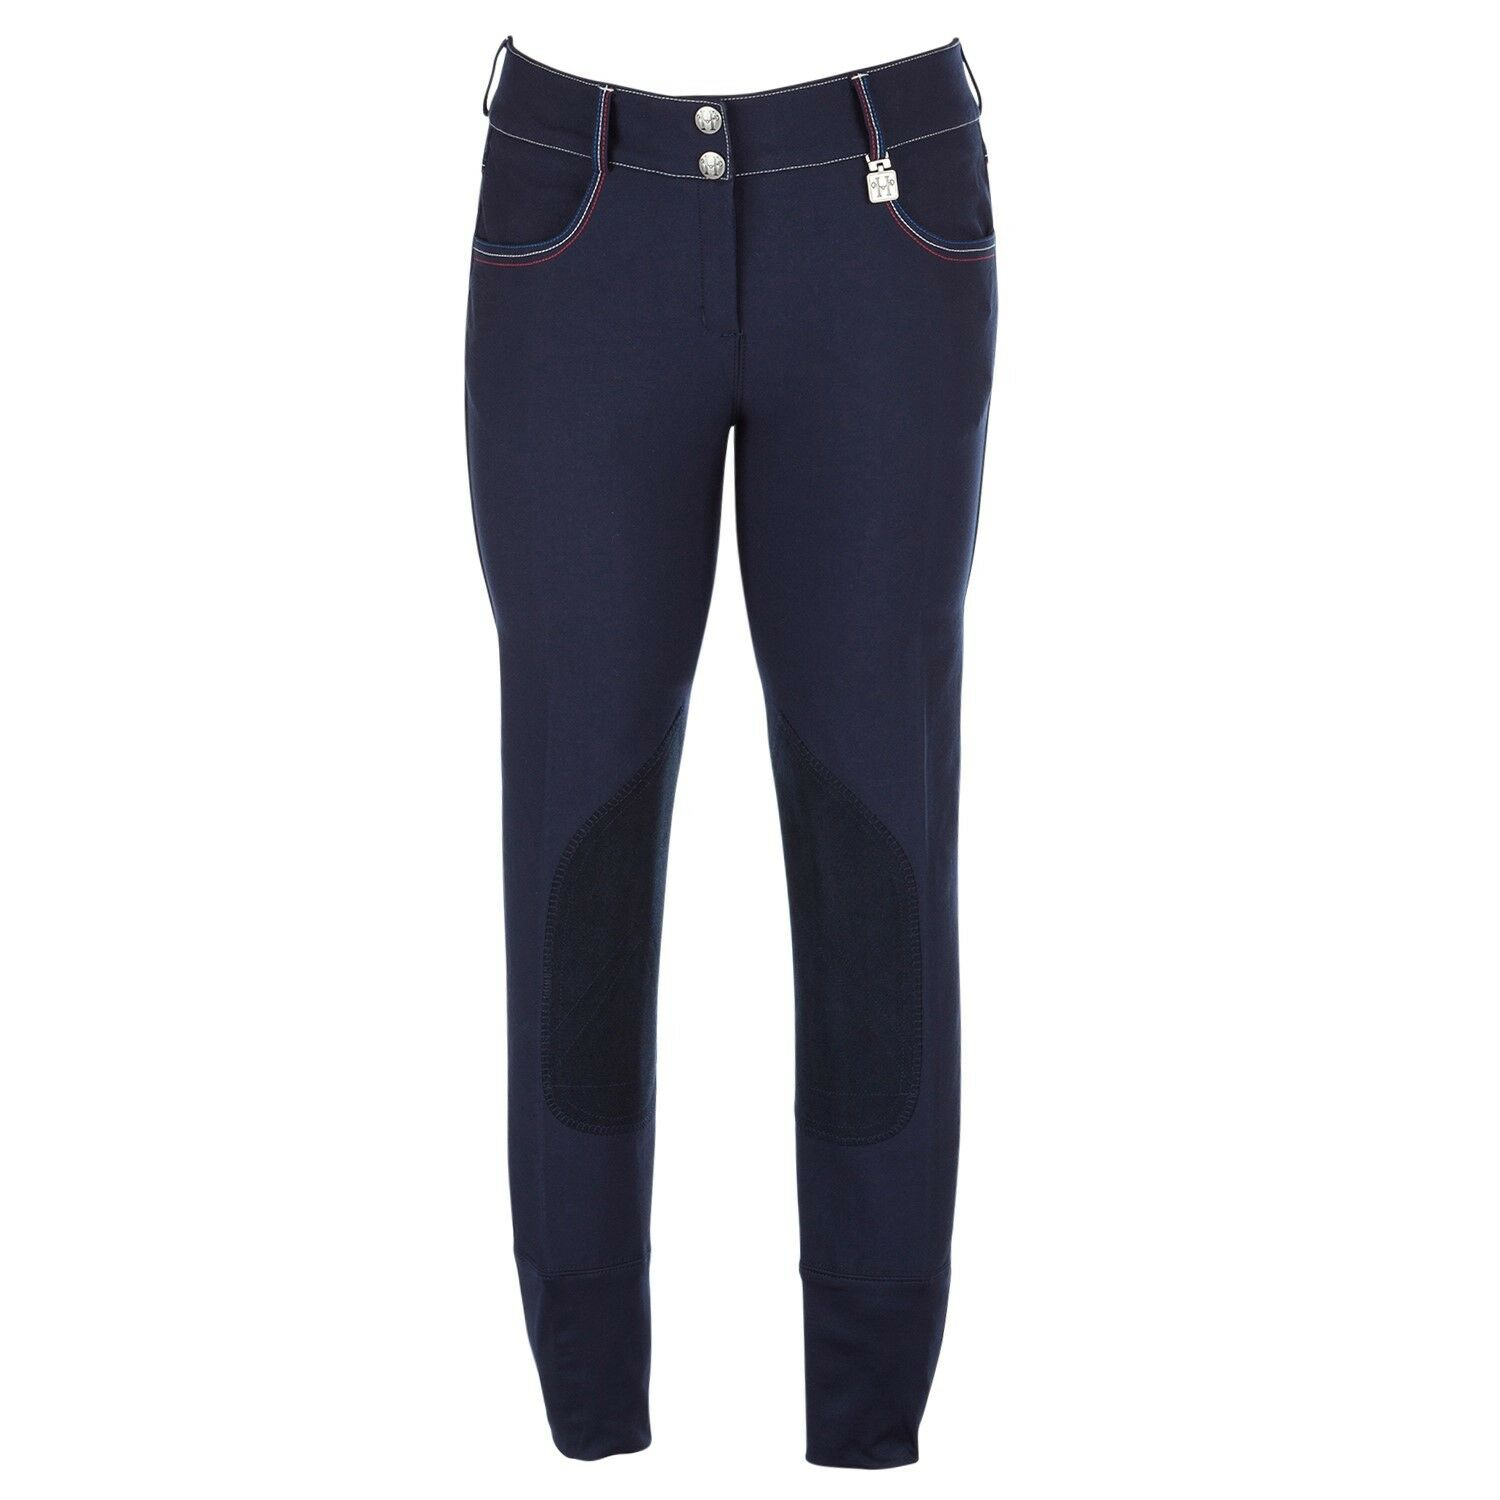 Huntley Equestrian Wouomo Navy with rosso, bianca, e blu Seam Breeches